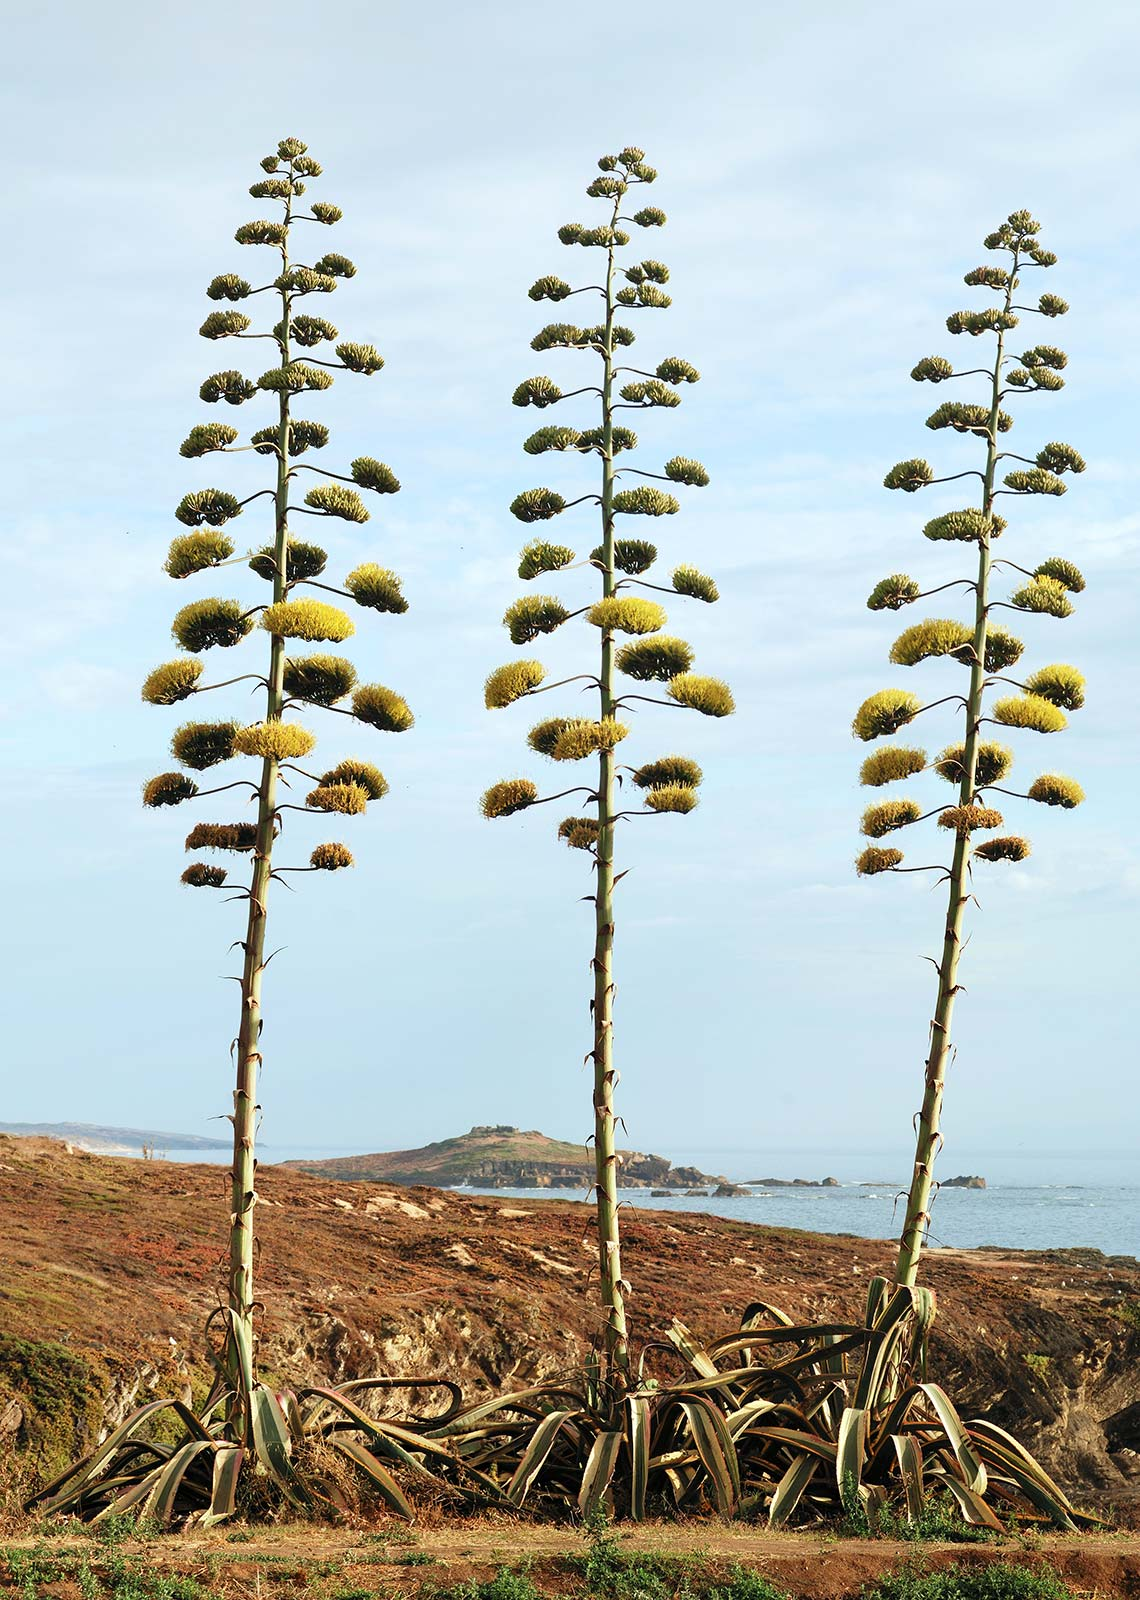 Agave americana in bloom in Portugal.